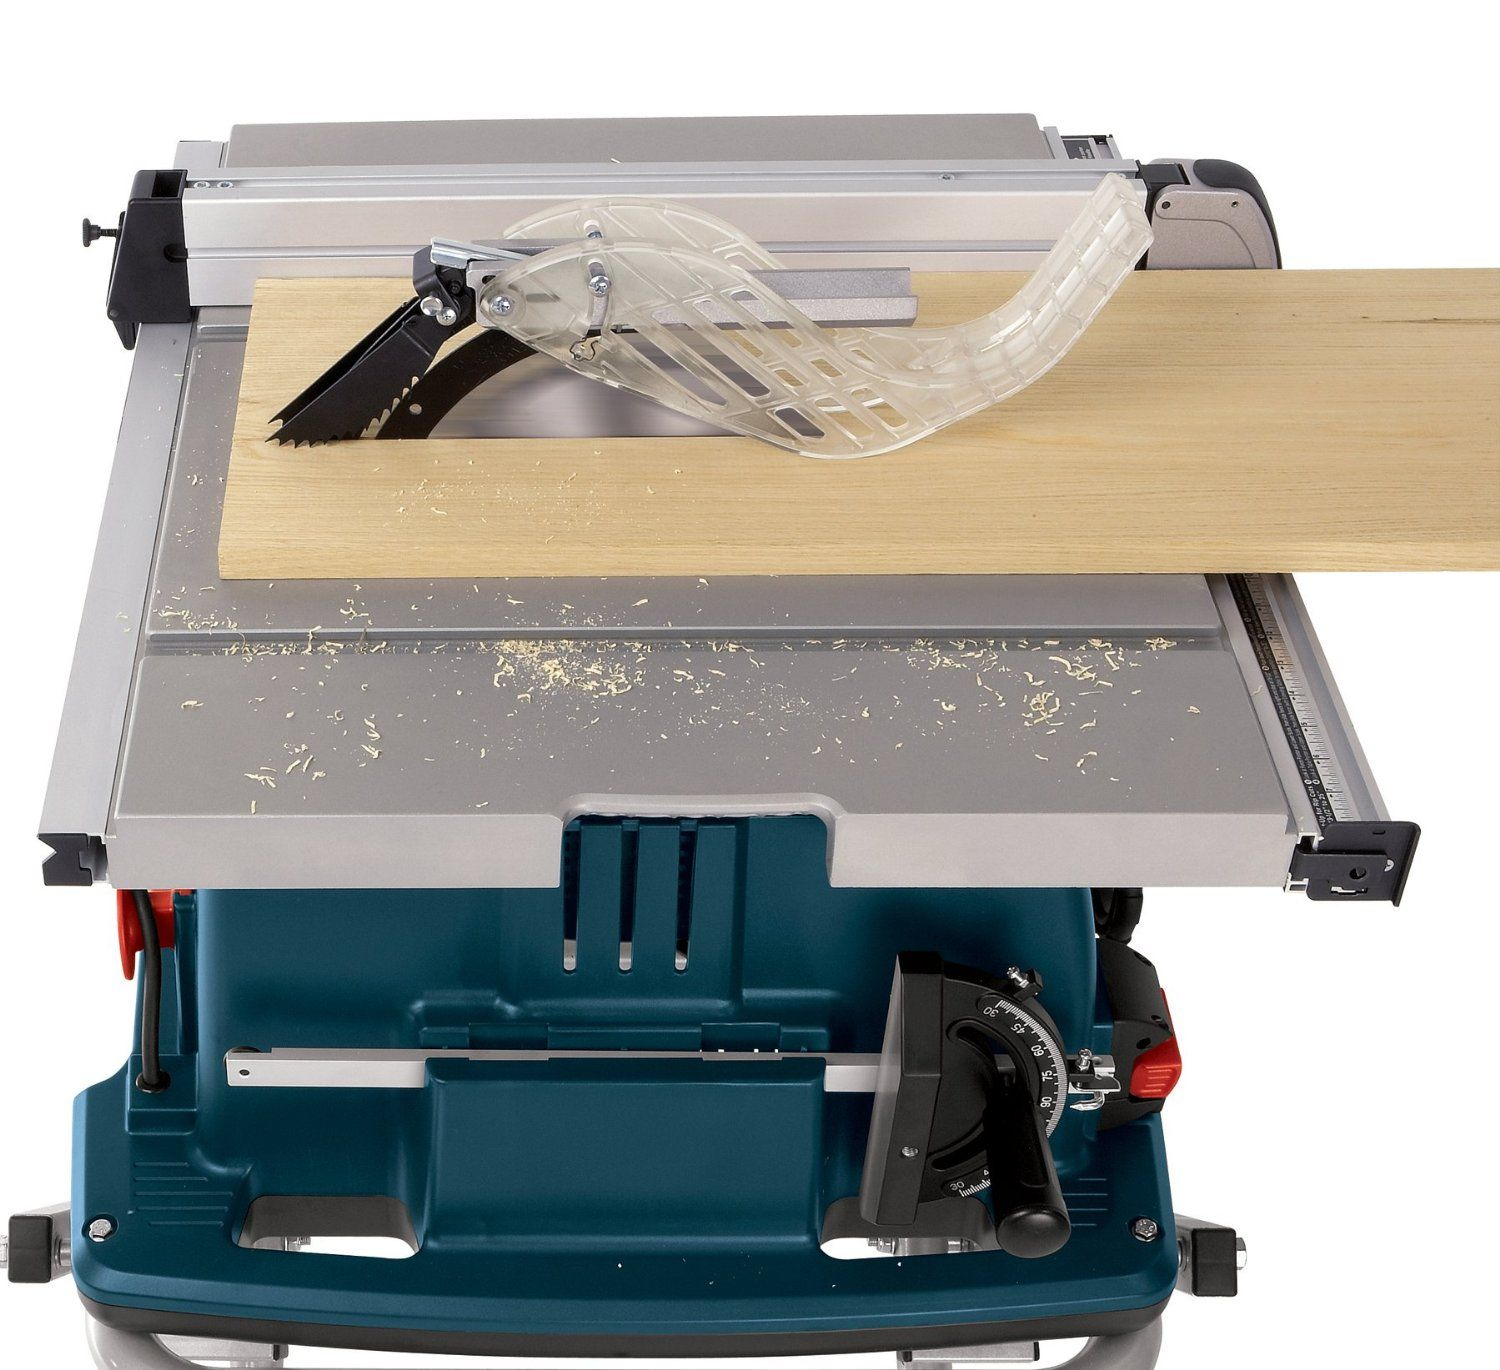 A dull blade would hinder accuracy and performance of a table saw a dull blade would hinder accuracy and performance of a table saw and may cause adjustment greentooth Gallery